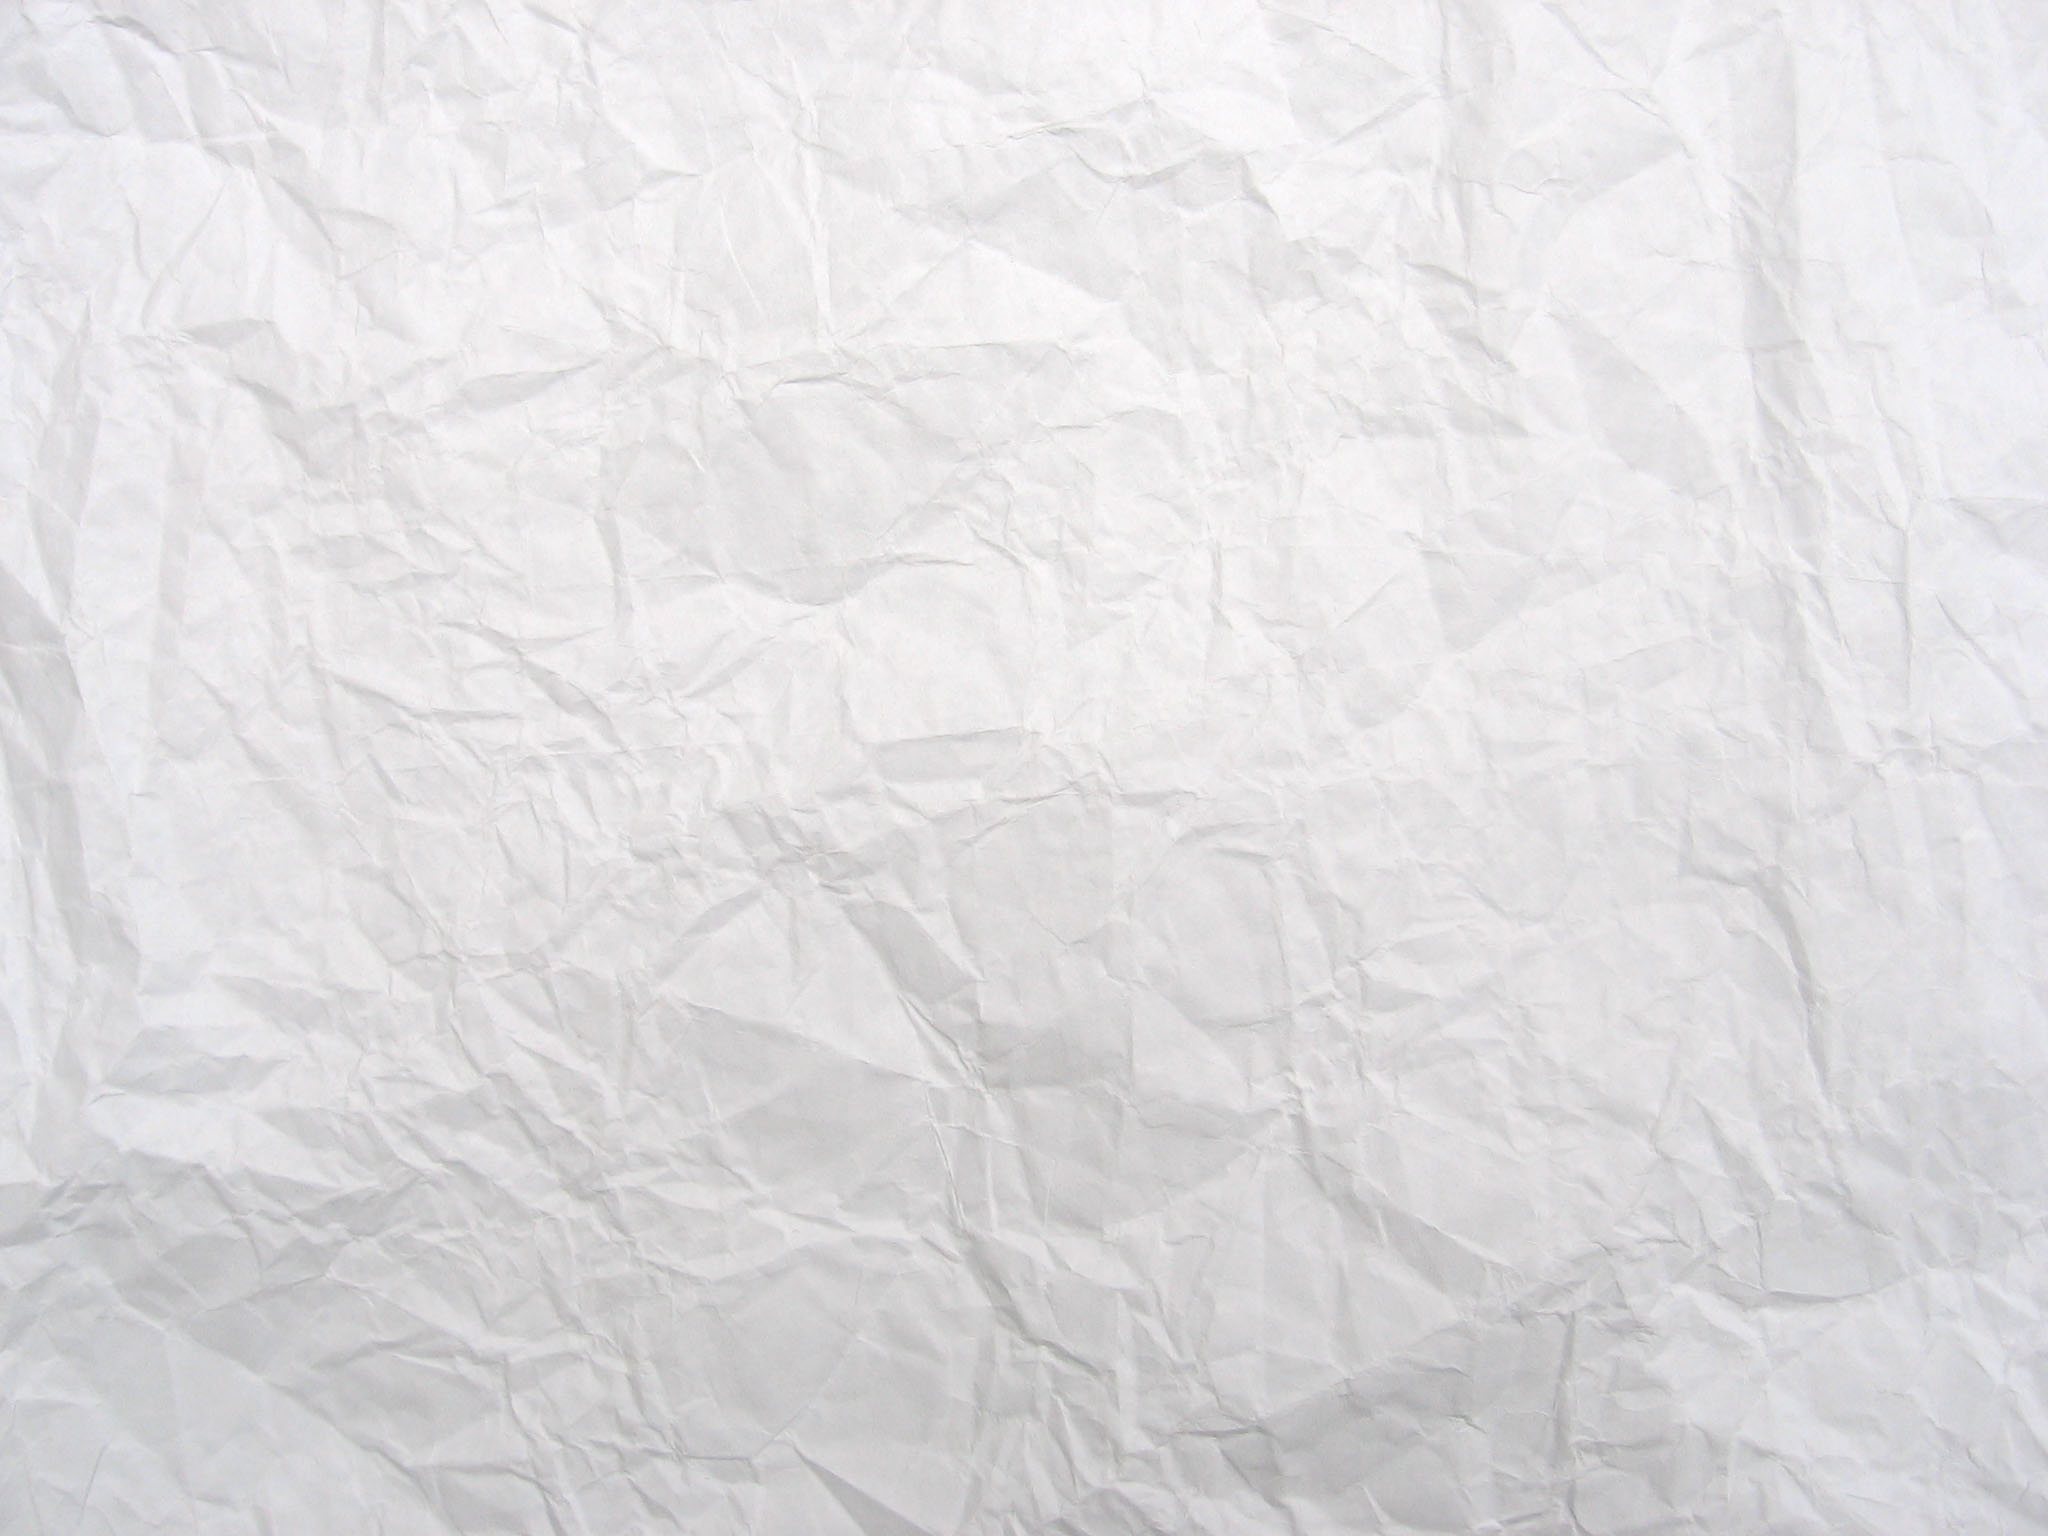 Crumpled White Paper High Resolution In HD Wallpaper Photo